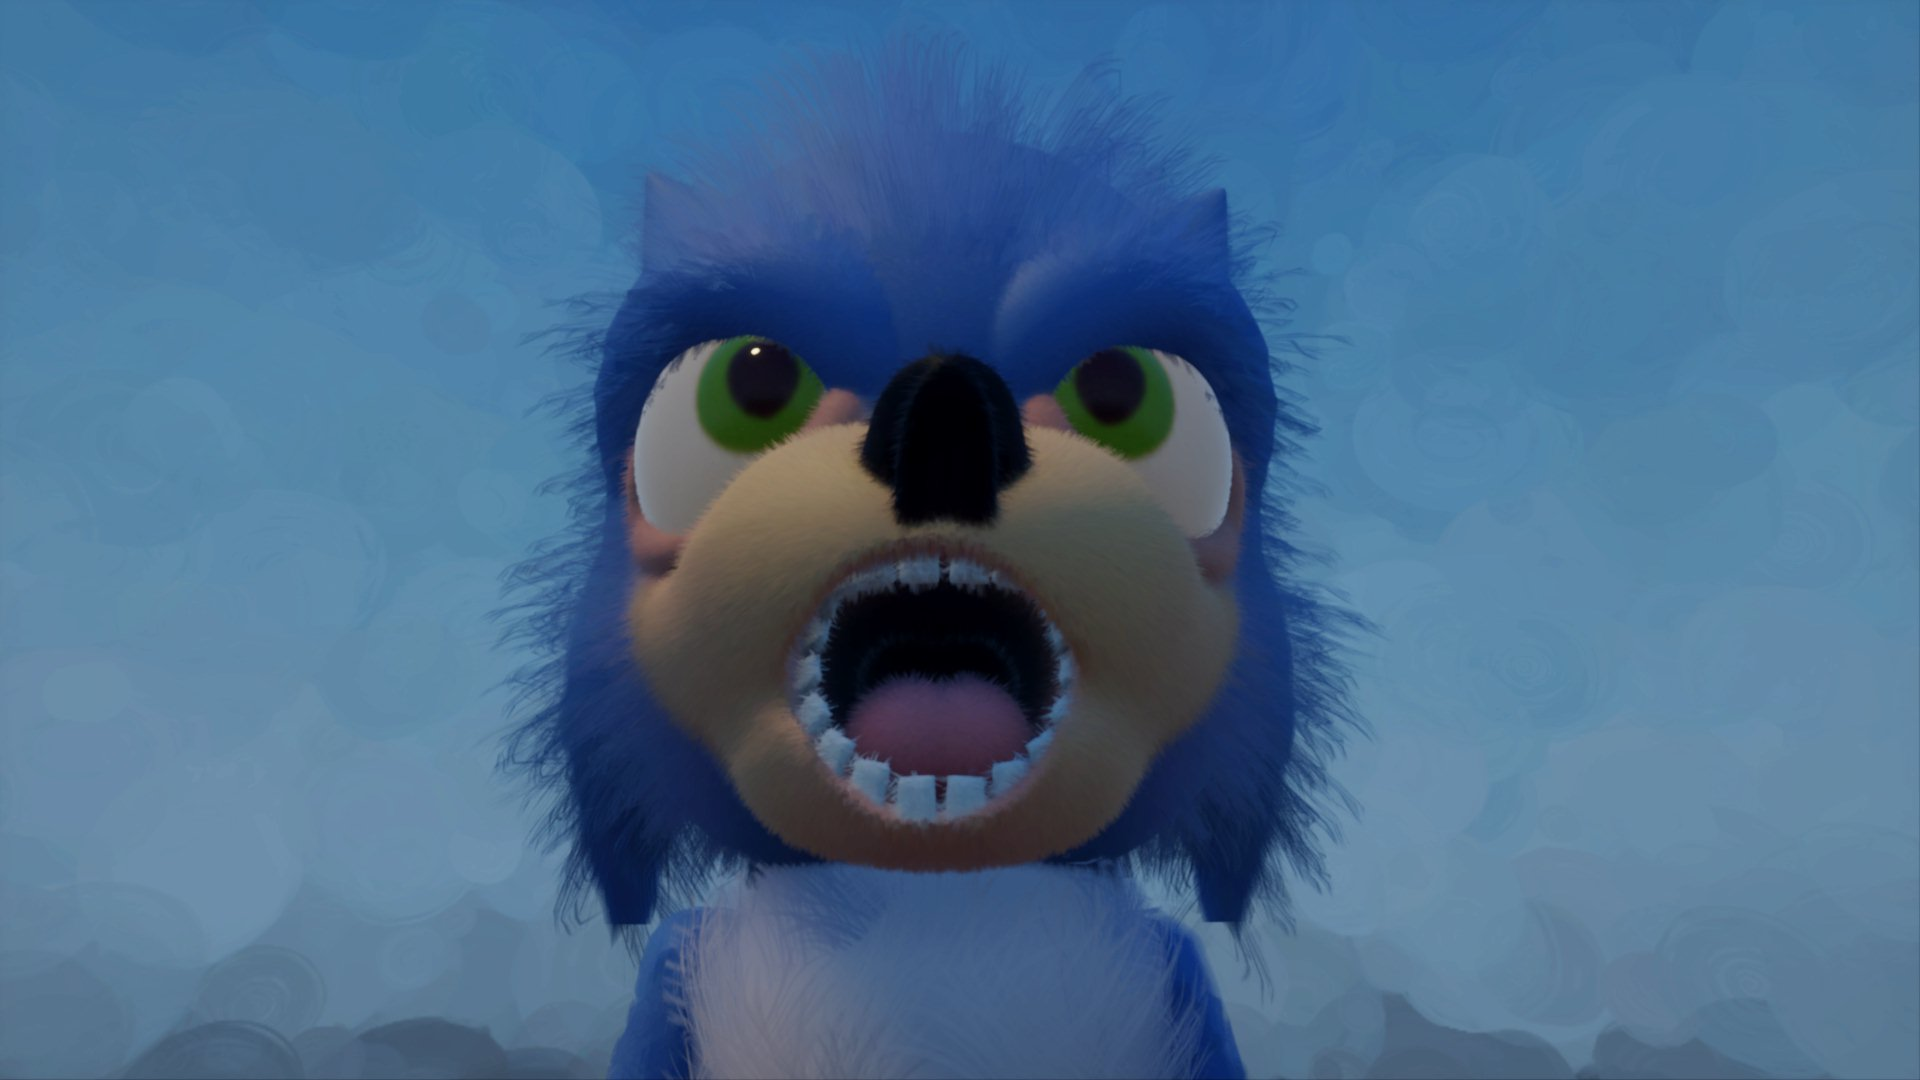 Sonic The Hedgehog 2019 Movie Design Indreams Me